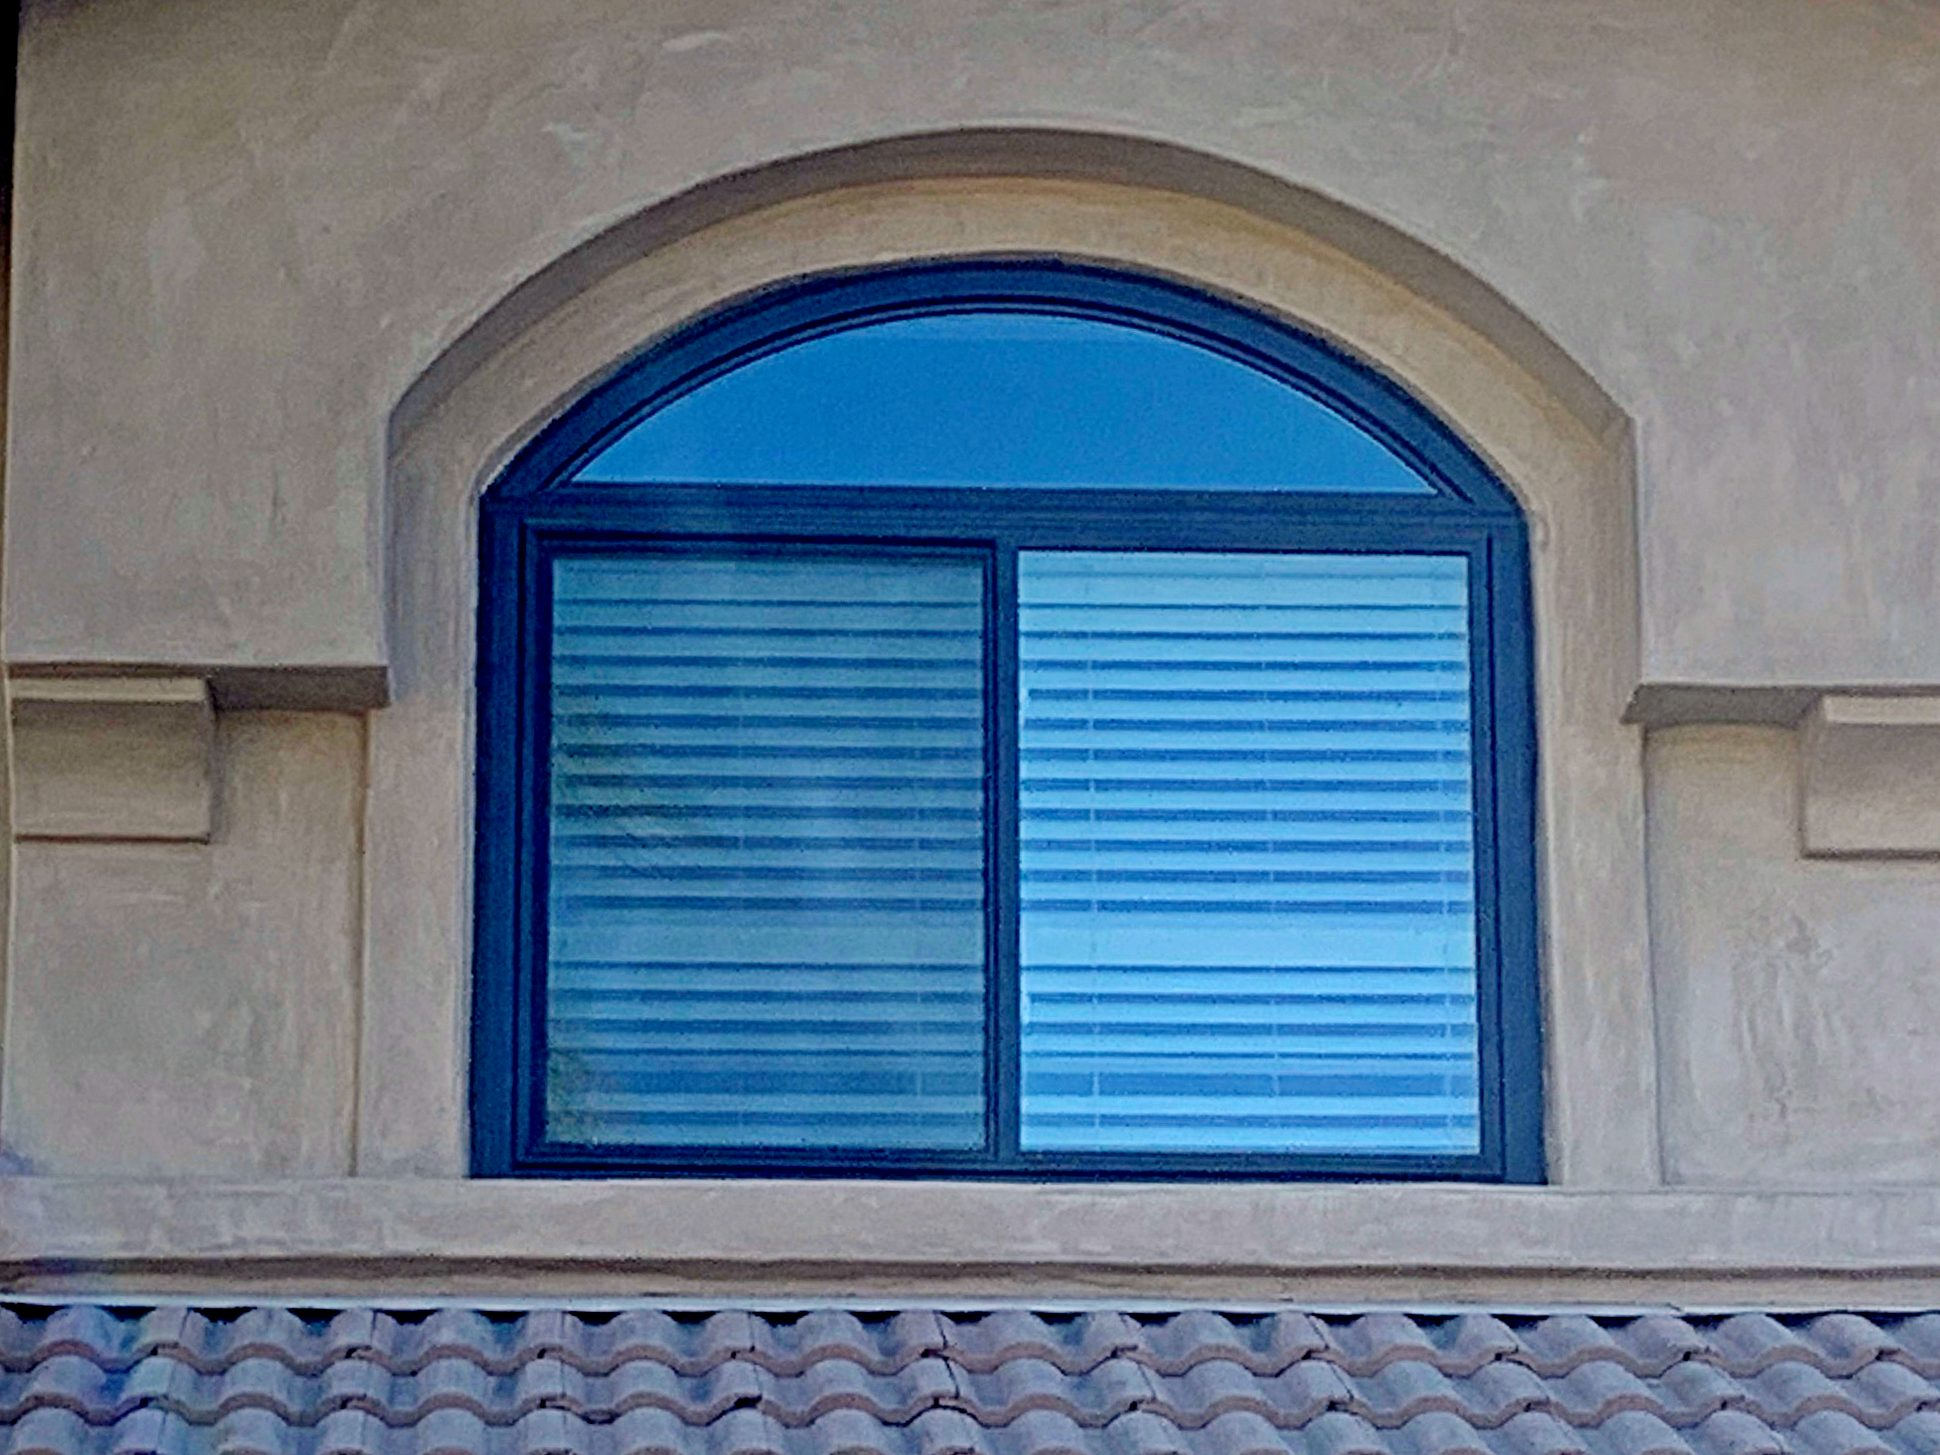 Anlin Catalina Windows Replacement Project in Ontario